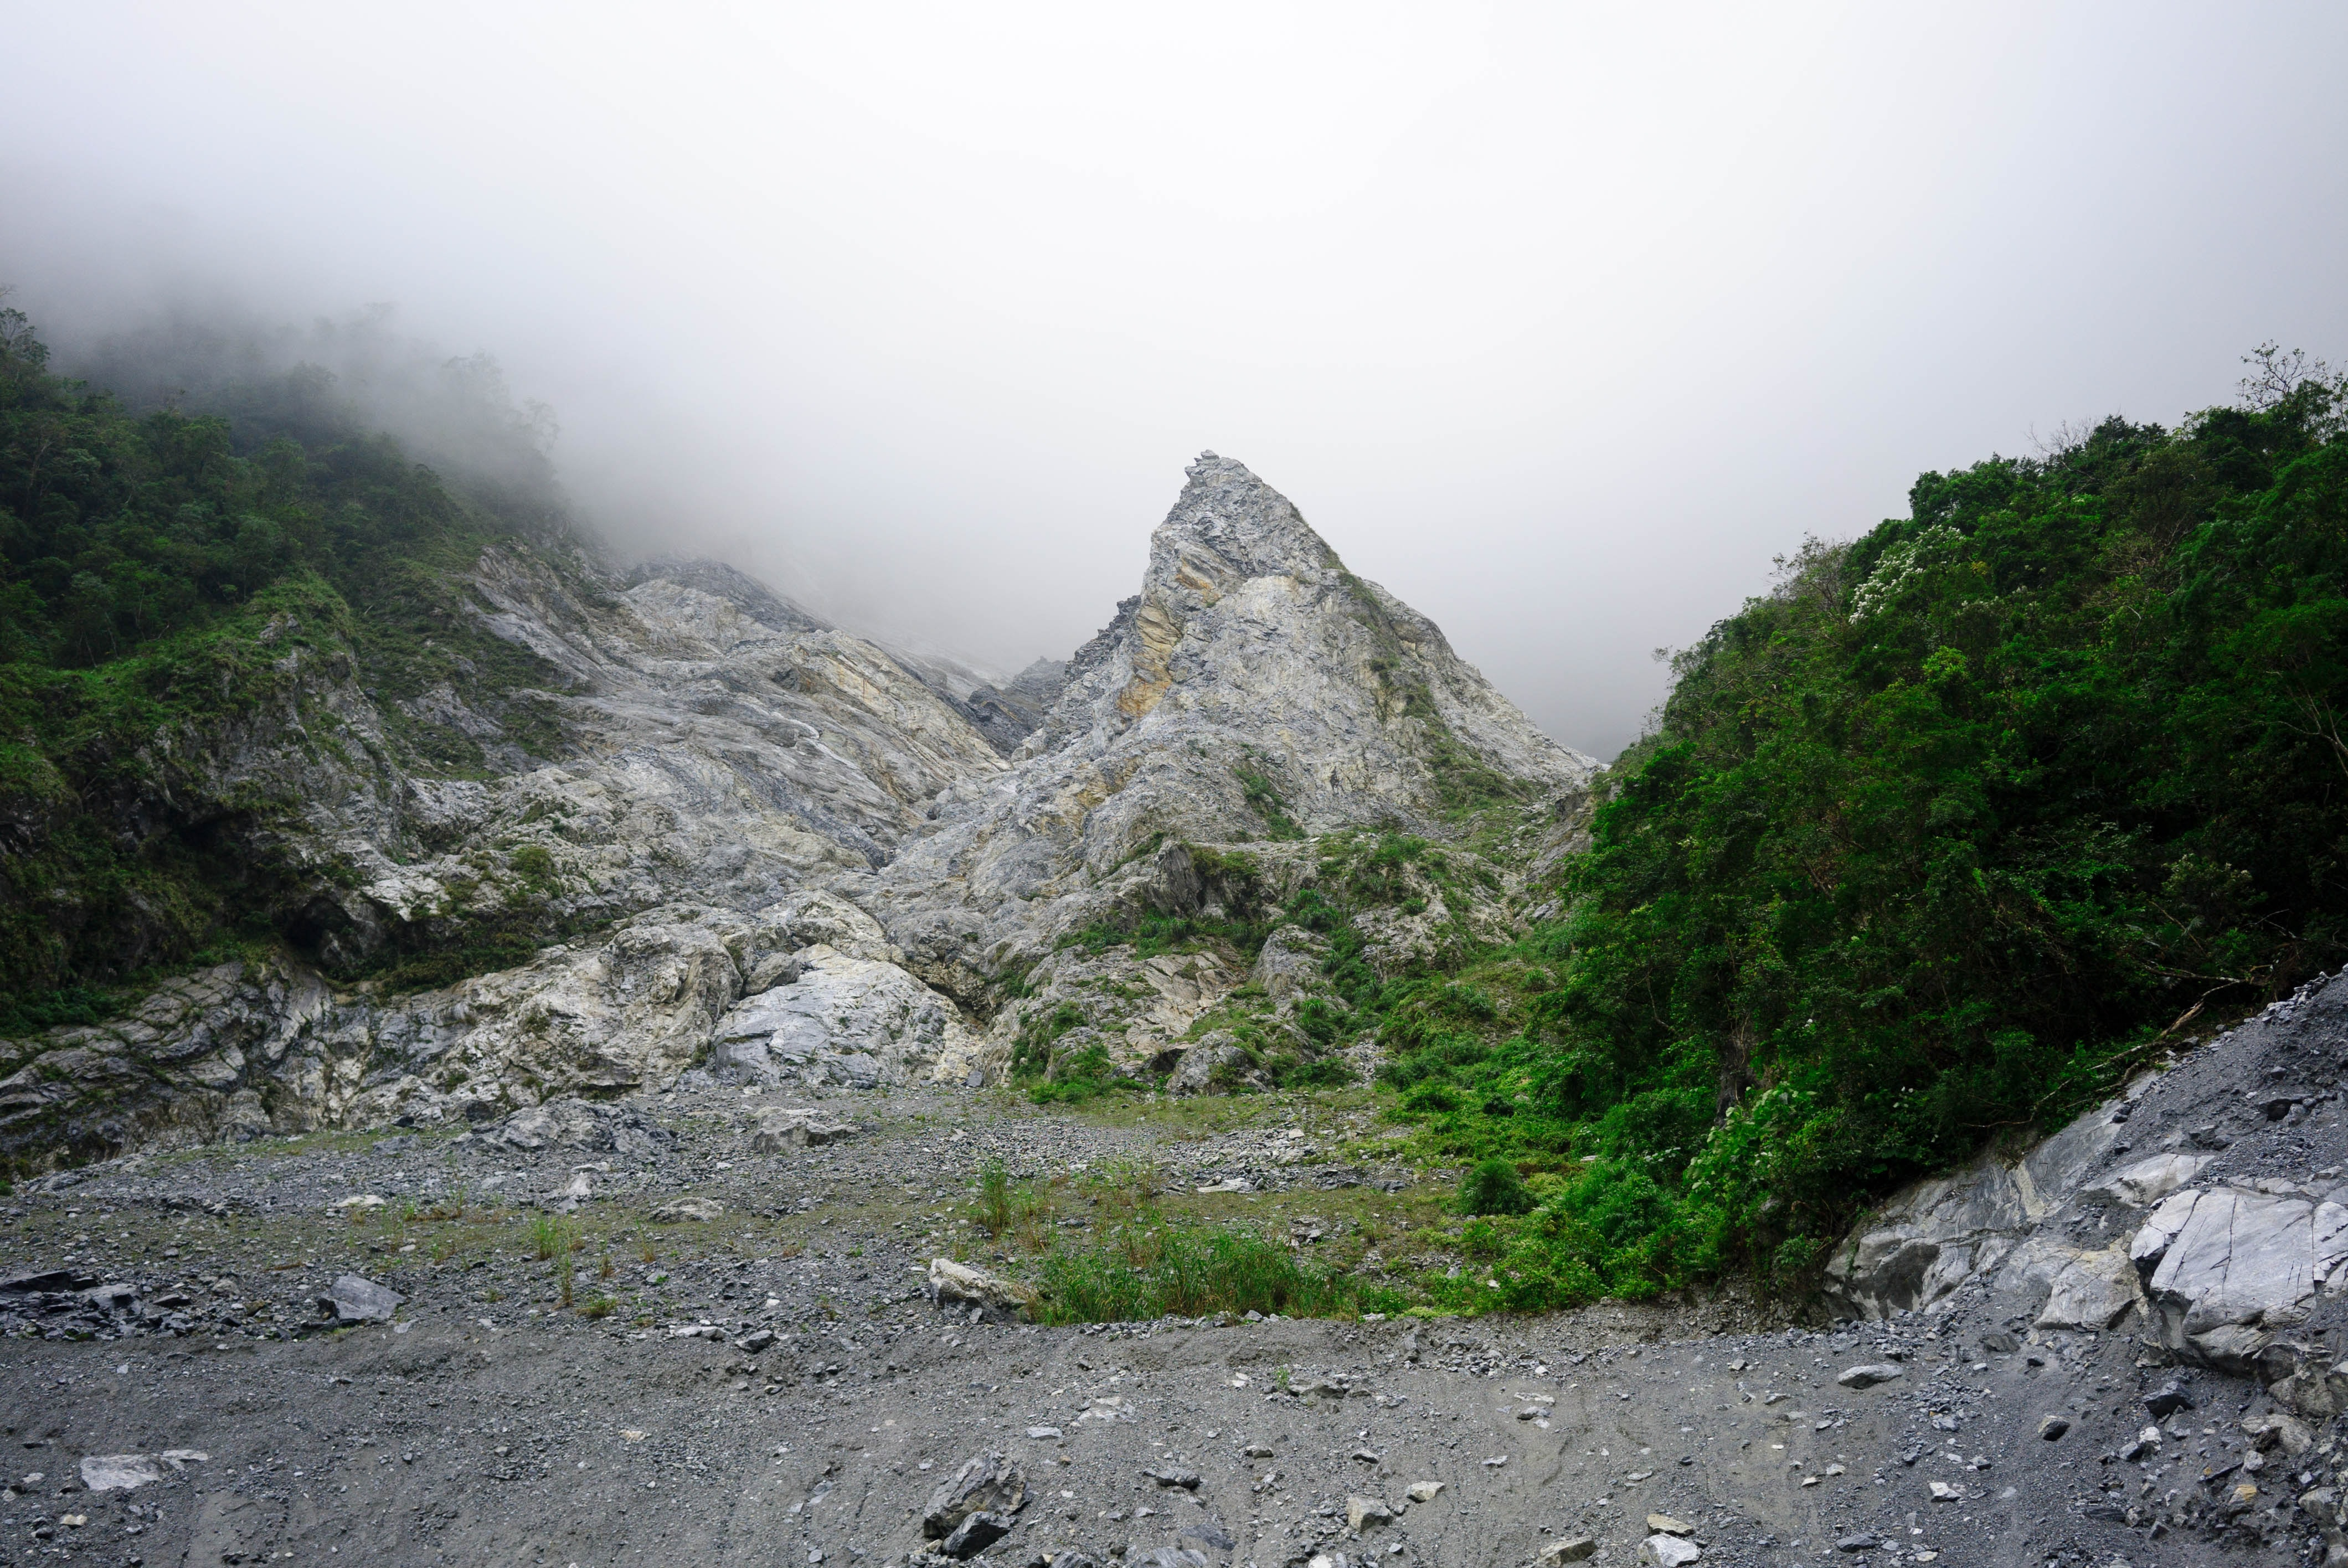 A craggy rock formation with a sharp peak on a mountainside